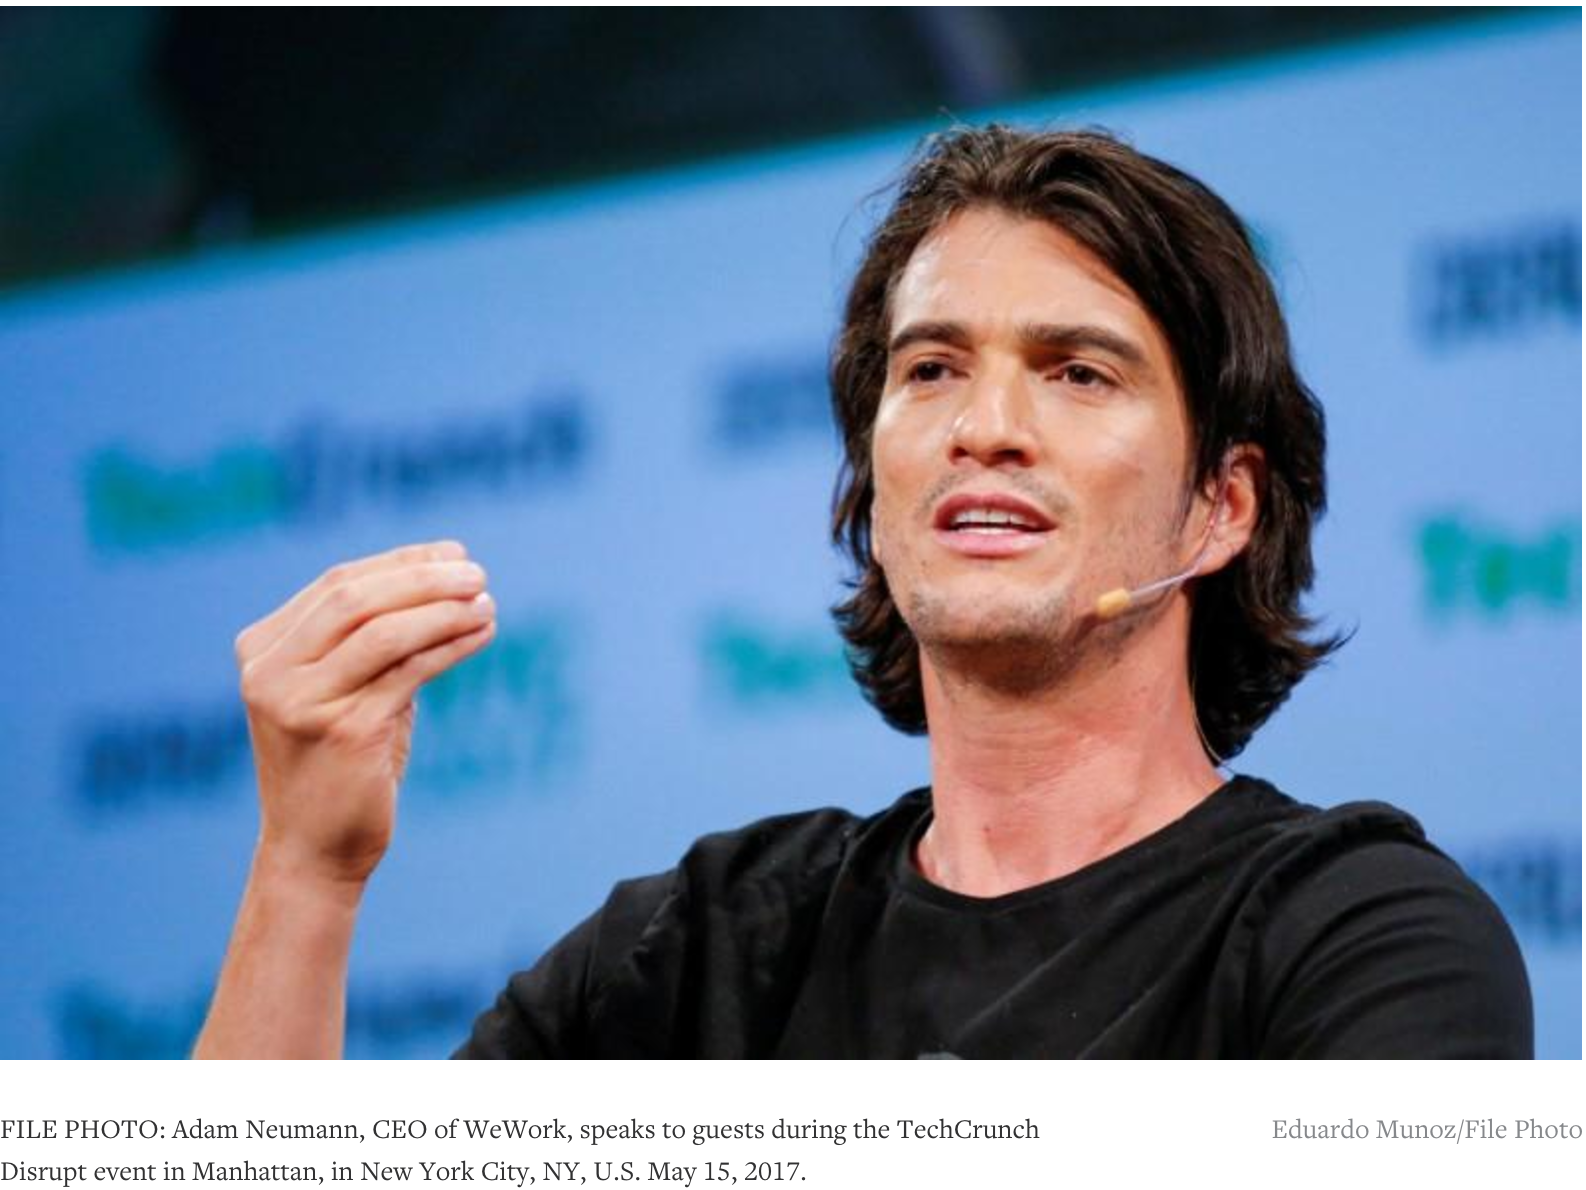 Startup WeWork Has Raised $760 Million at a $20 Billion Valuation in New Funding Round – Now The Most Valuable Office REIT's in The World and They Are Still Private